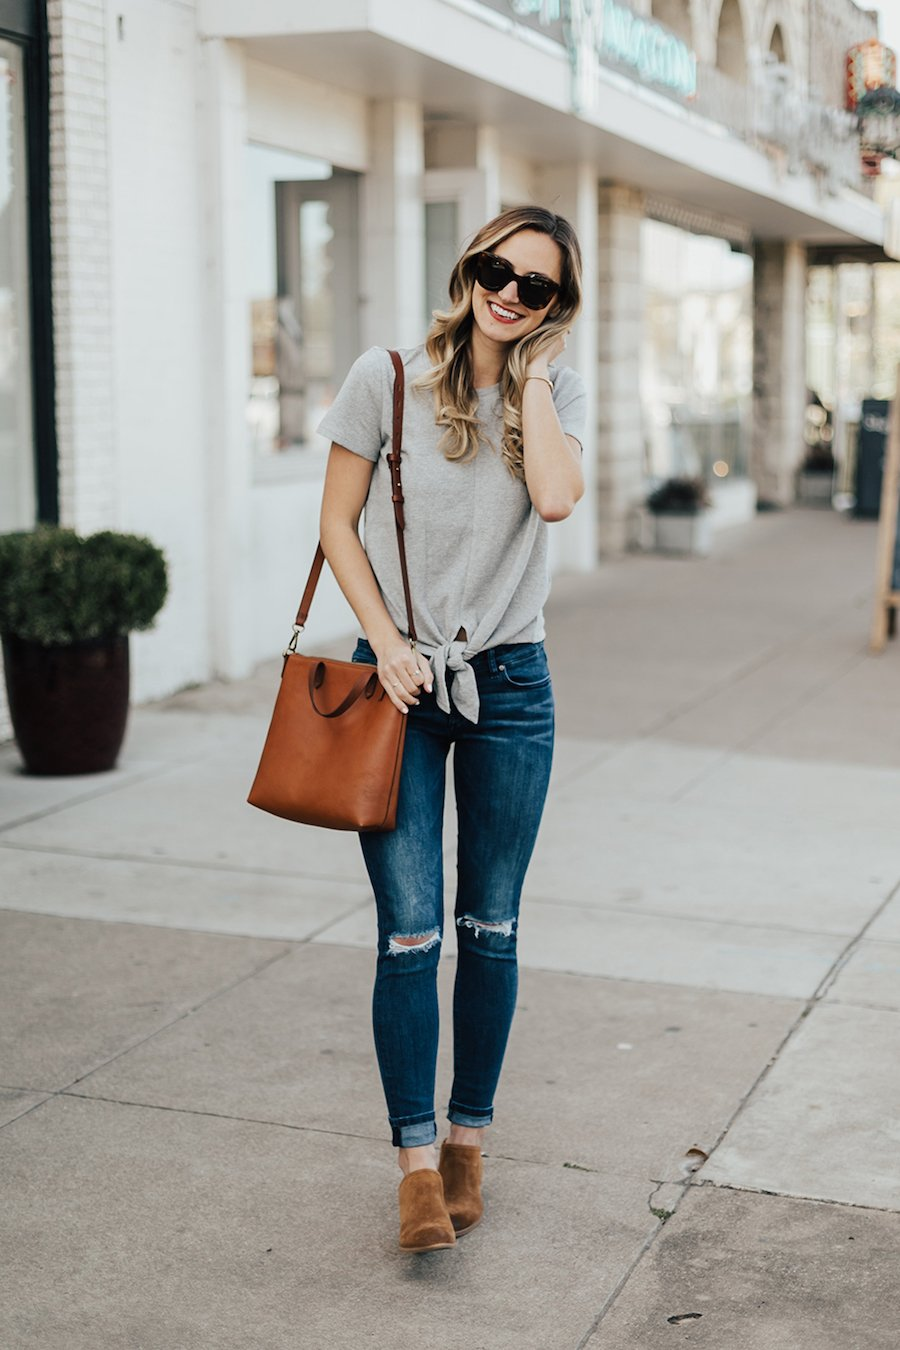 cuffed jeans and ankle boots casual weekend outfit idea